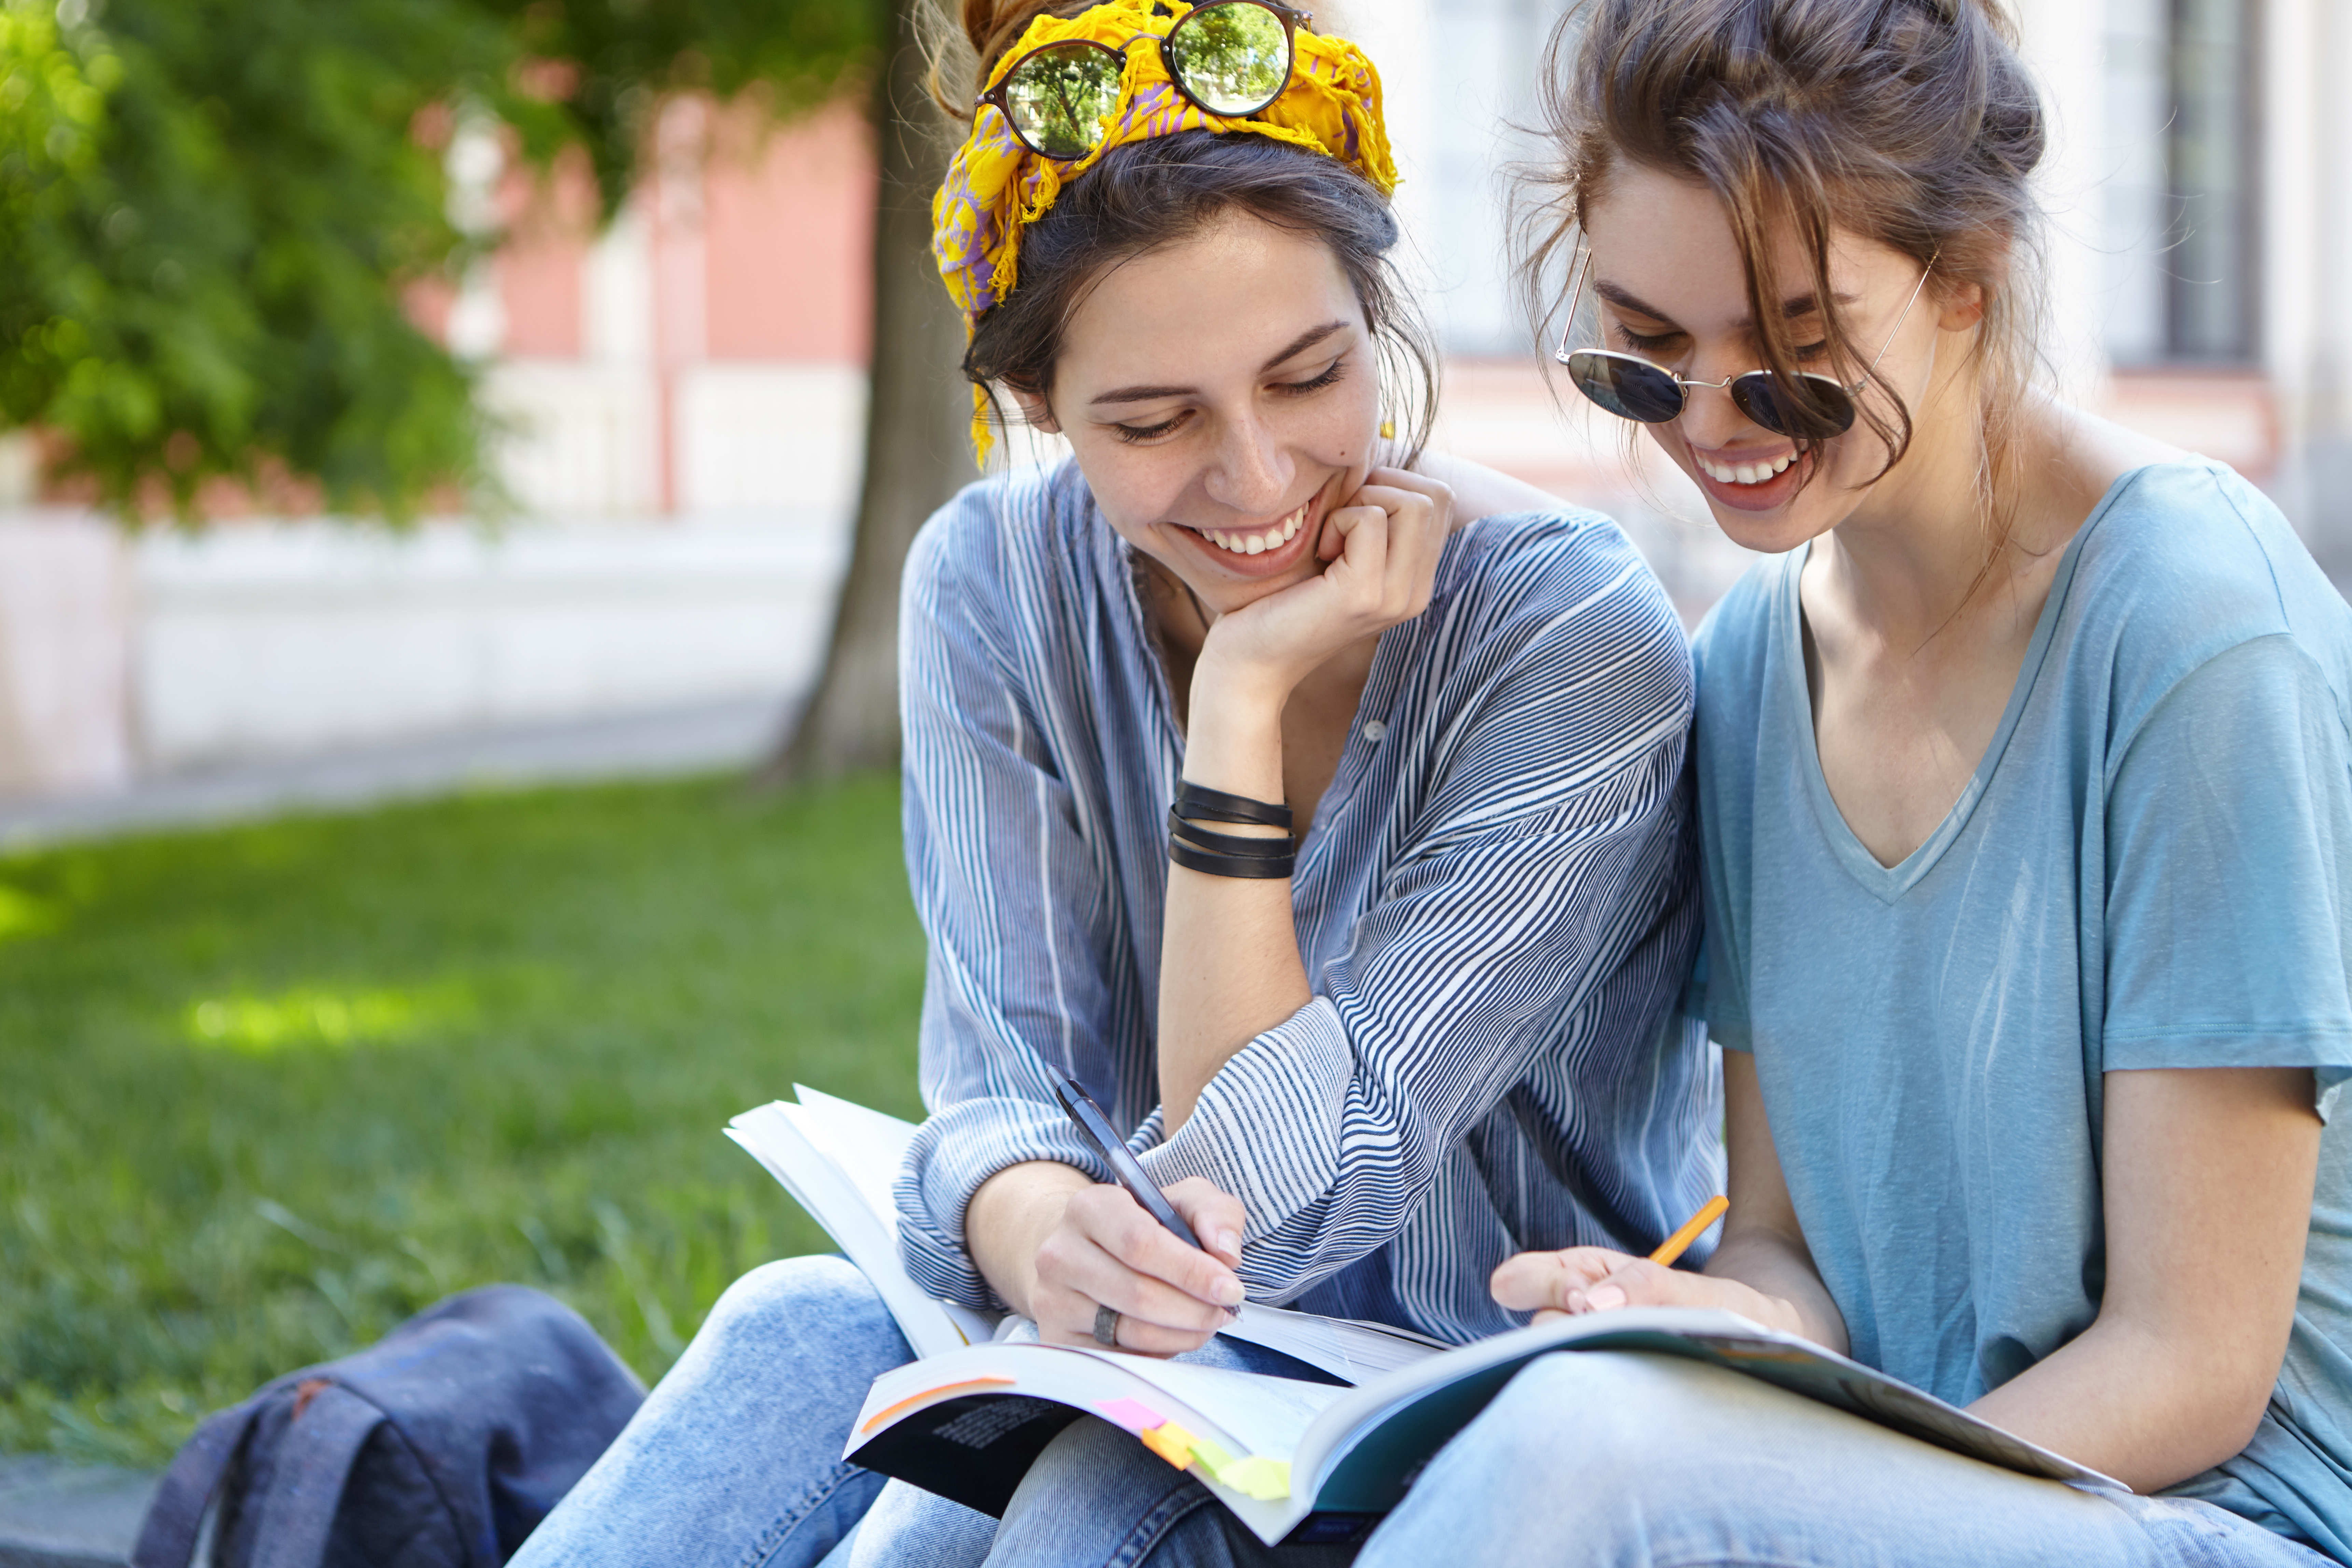 Happy smiling females sitting outdoors reading books preparing for classes at university having fun together admiring sunny weather and fresh air. Two beautiful women reading books in open air